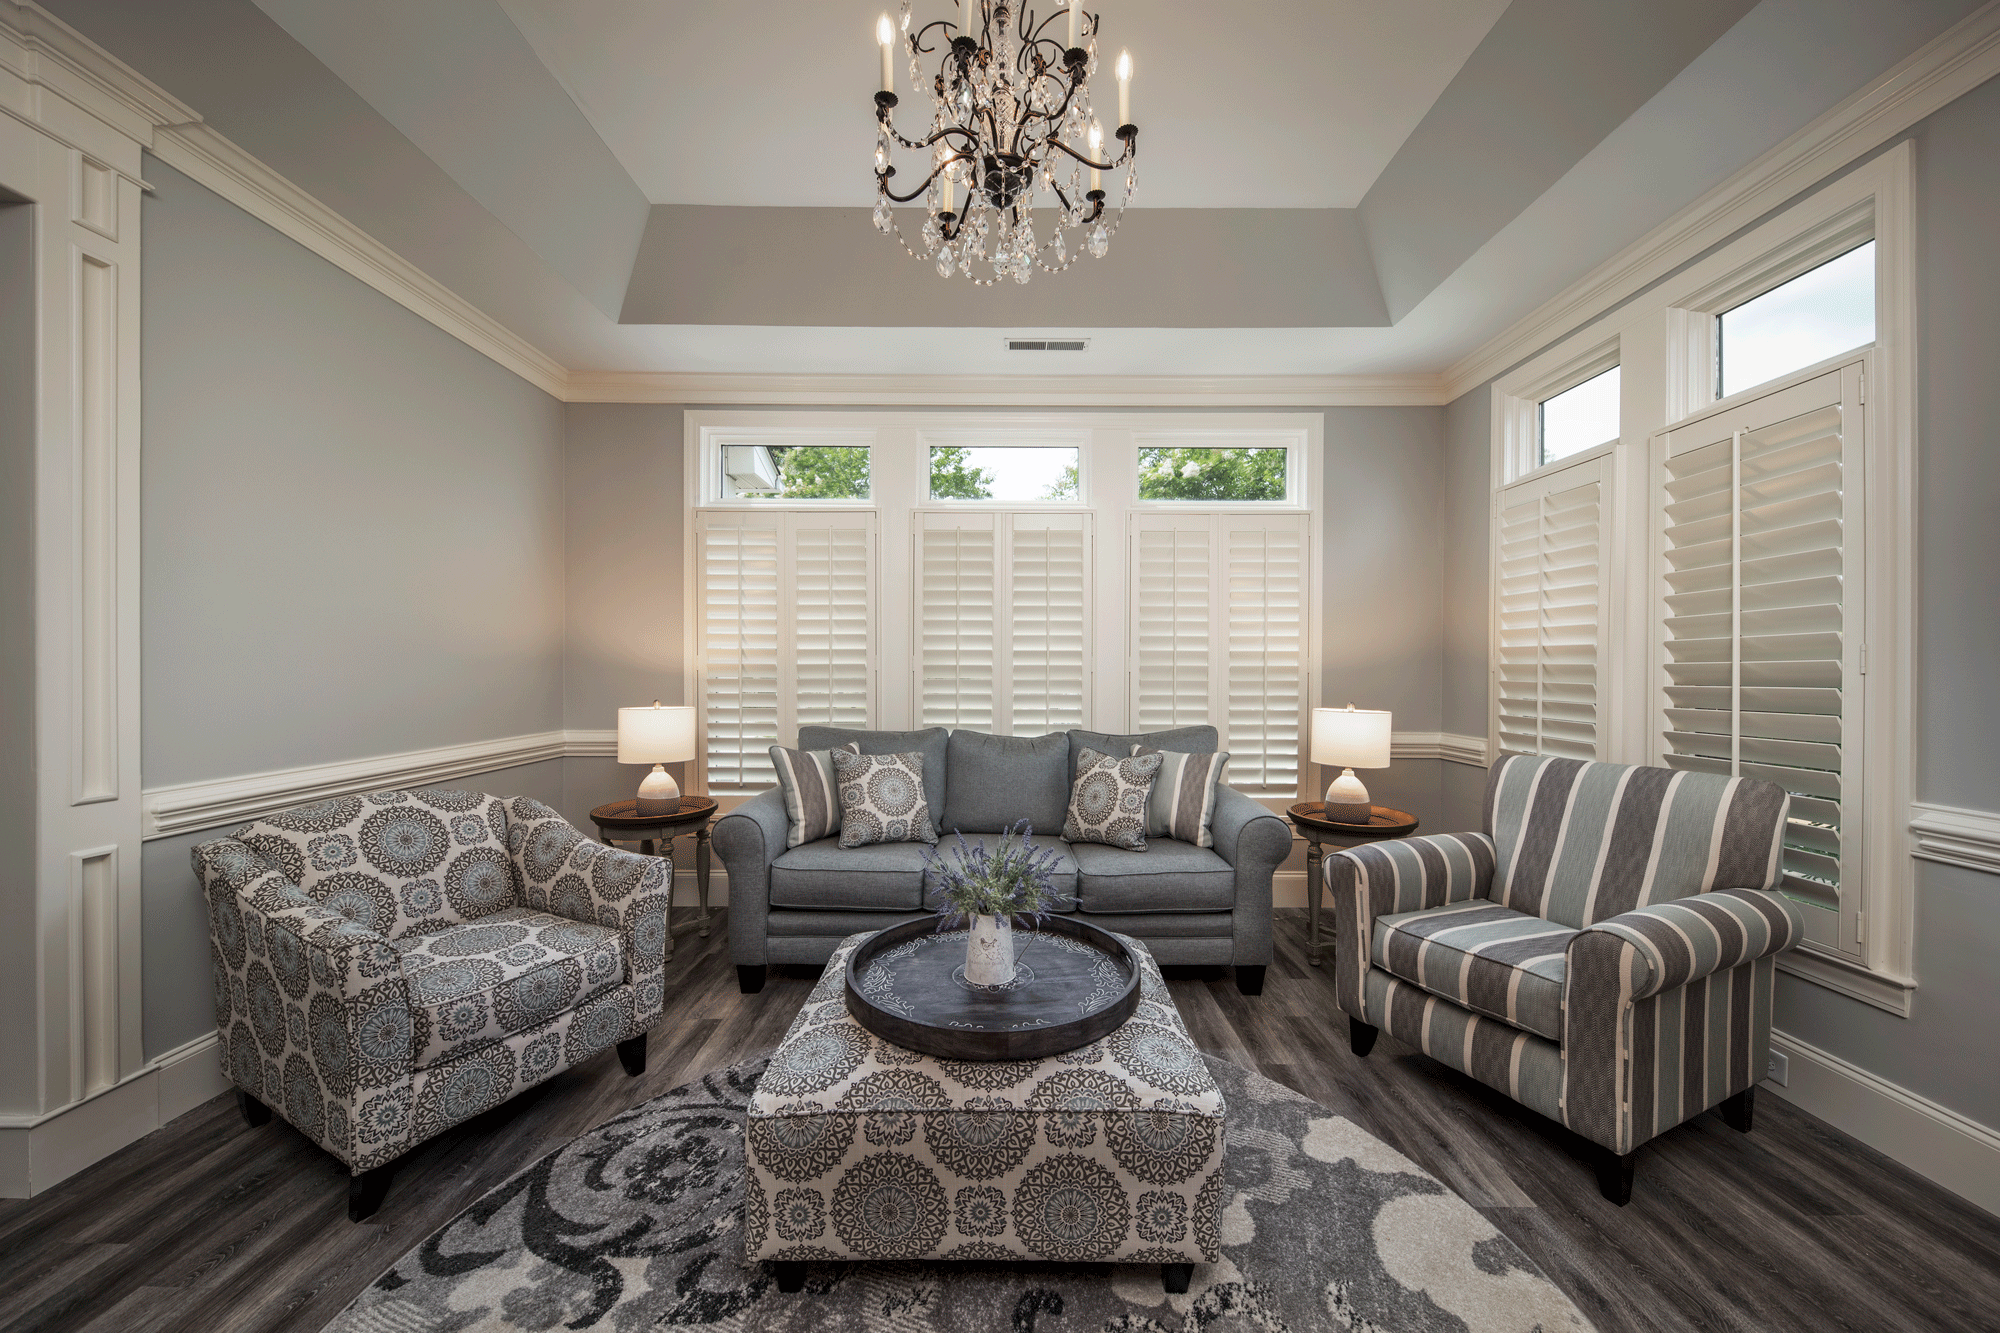 Living room design with furniture, seating, lighting, and wainscoting